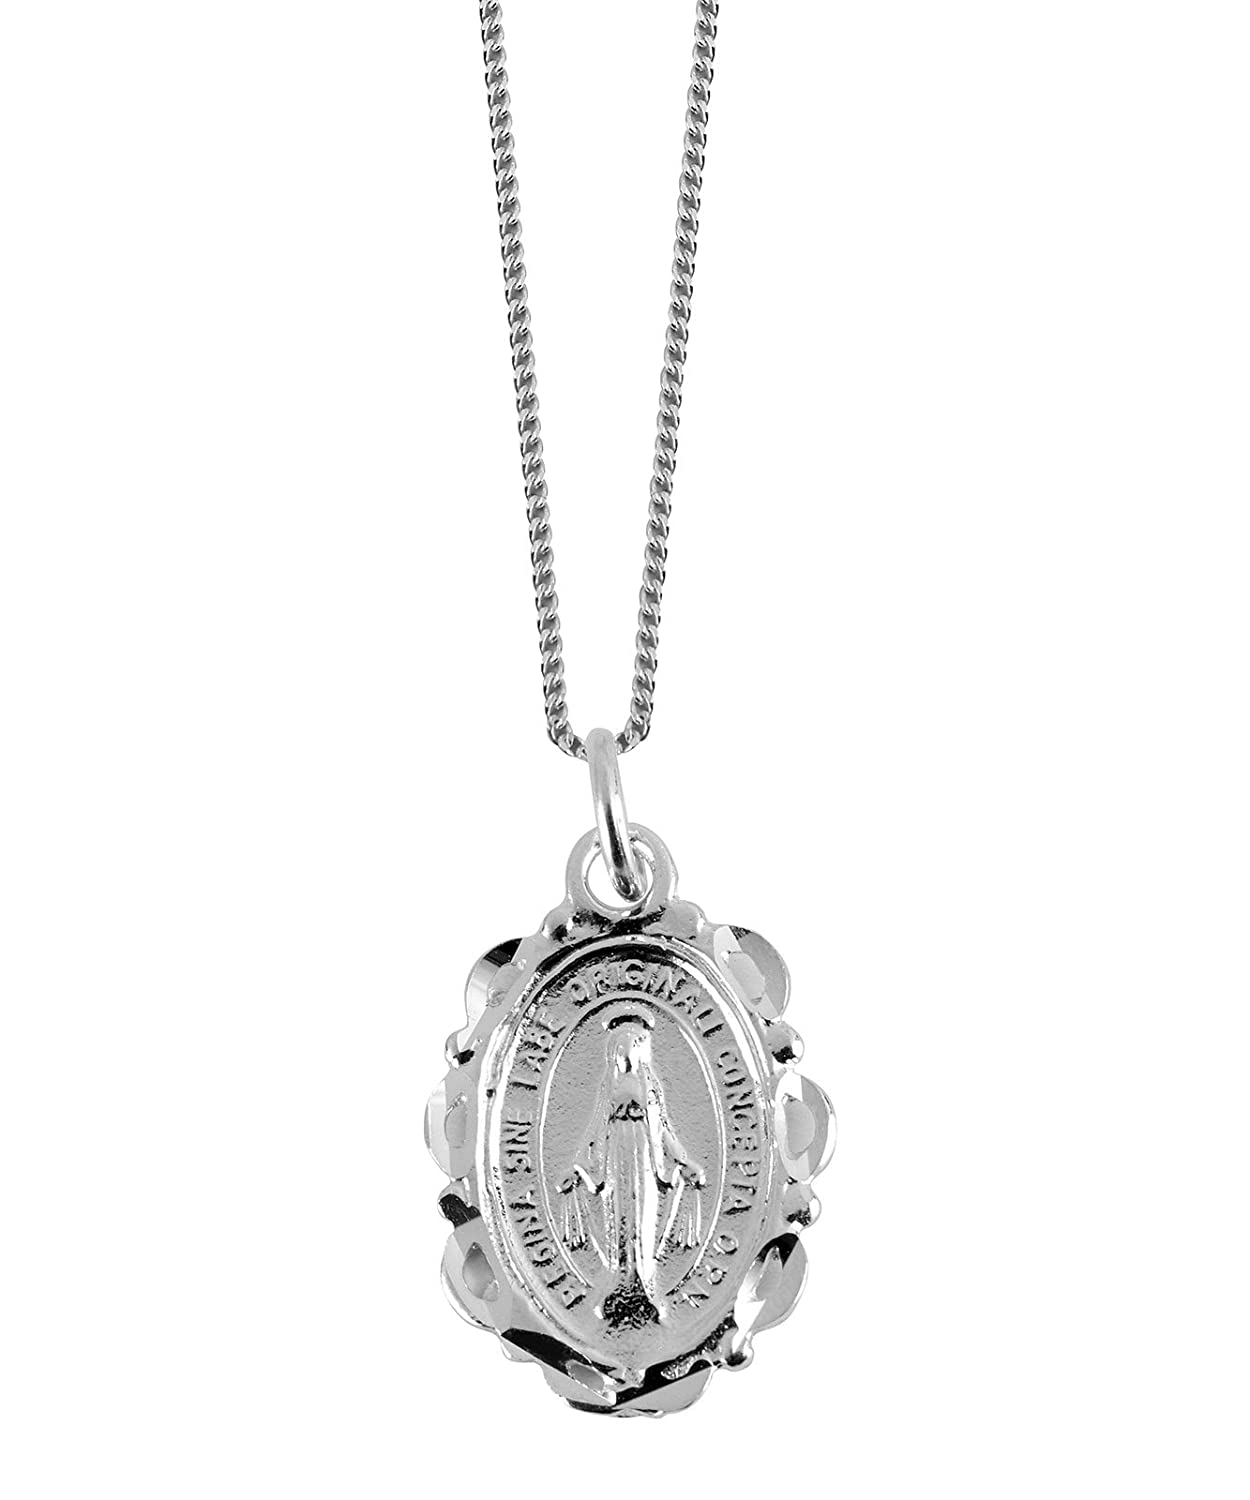 Sterling Silver Miraculous Medal with silver chain – perfect gift for the Christening or birth of a baby girl. Presented in a velvet lined case HB&H 3246